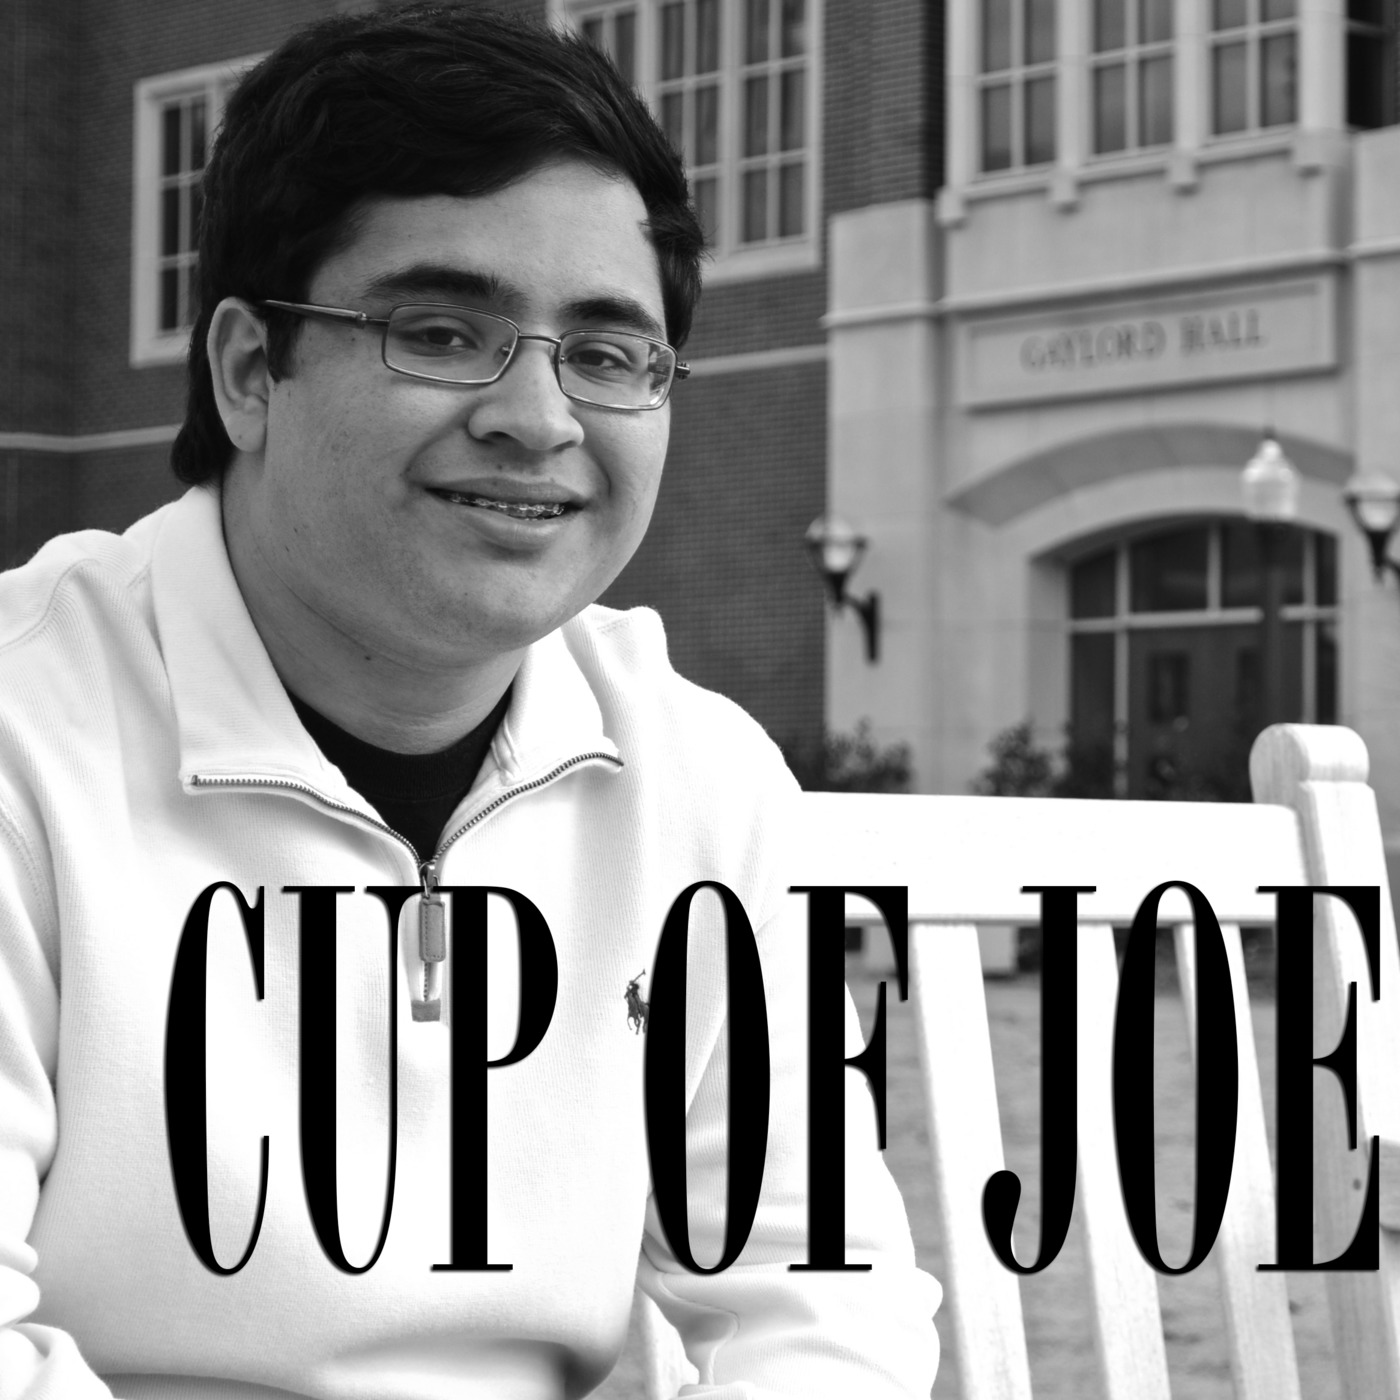 Cup of Joe Buettner